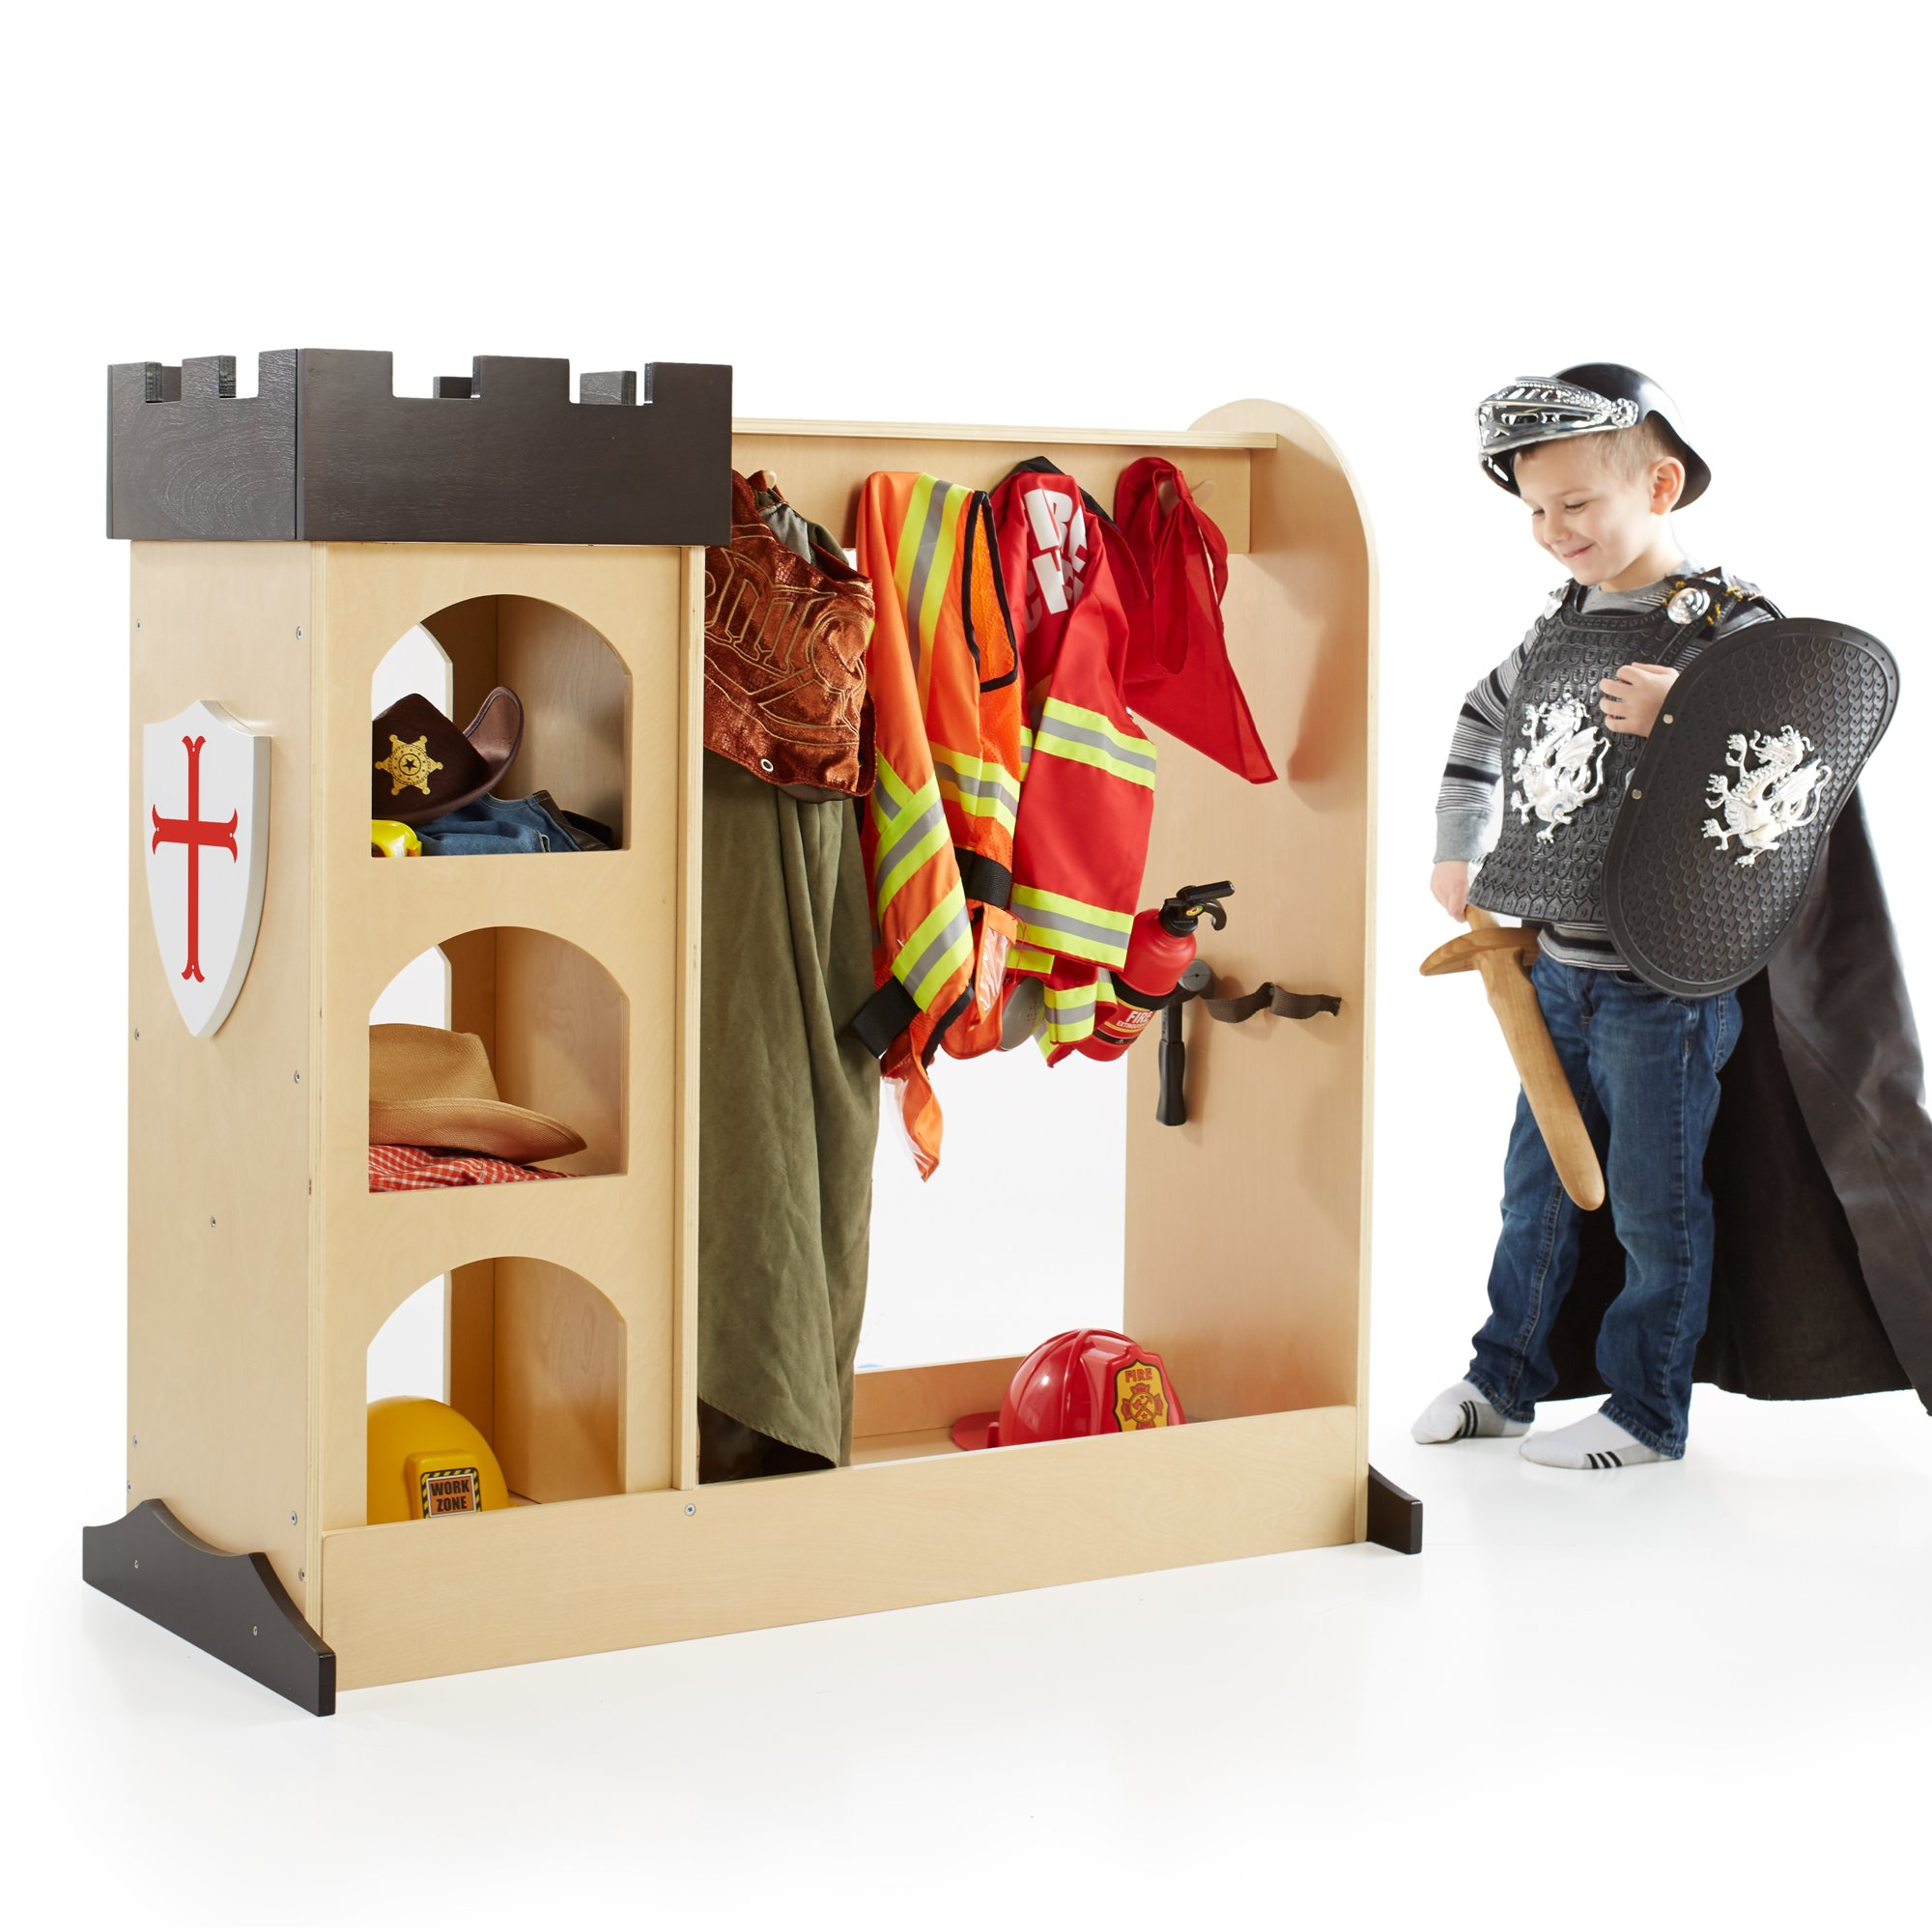 Guidecraft Children's Castle Dramatic Play Storage Center - Armoire, Dresser Kids' Furniture